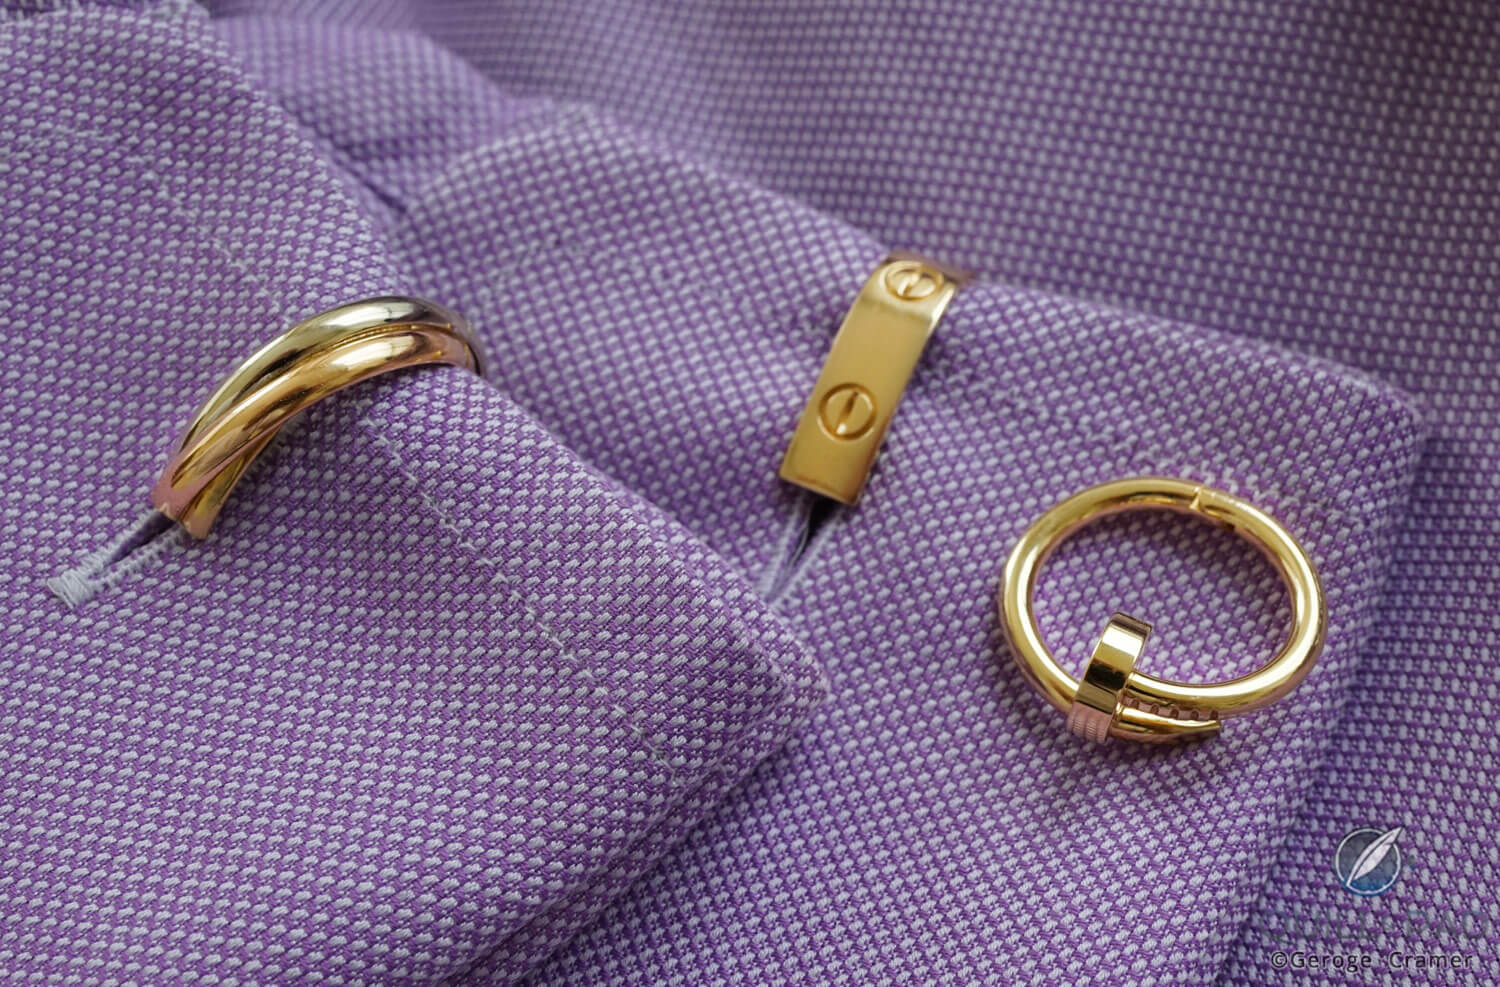 Cartier wrap around cufflinks